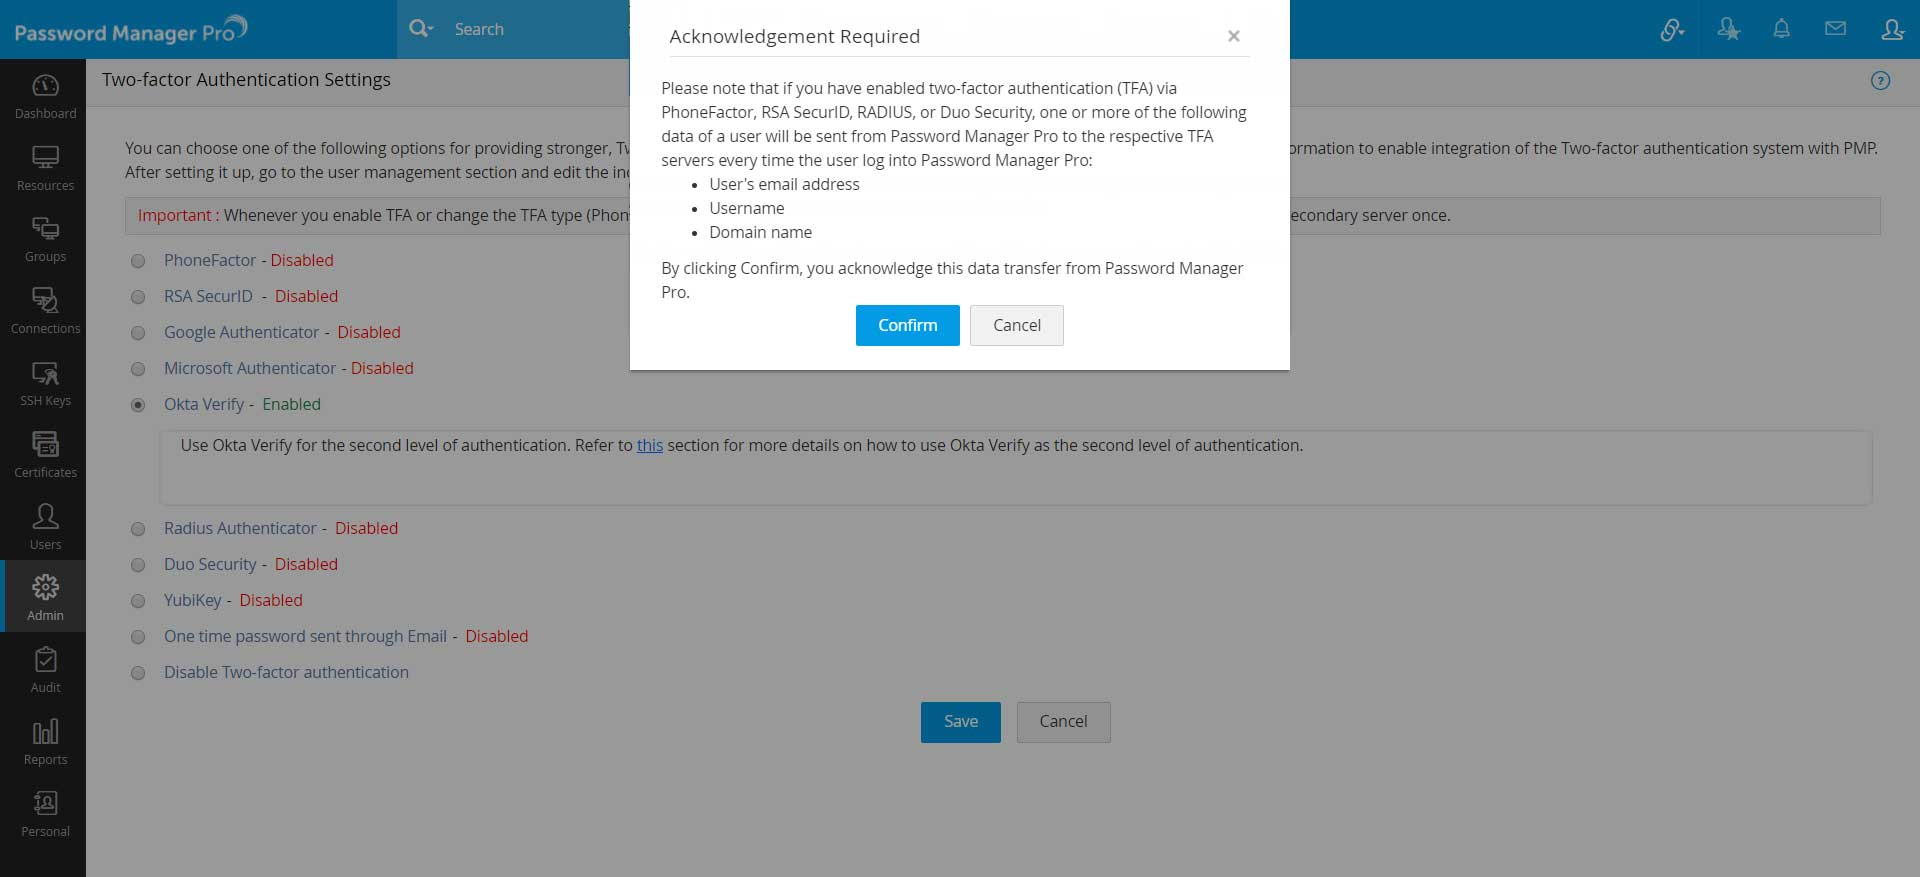 Setting Up Two-factor Authentication - Okta Verify